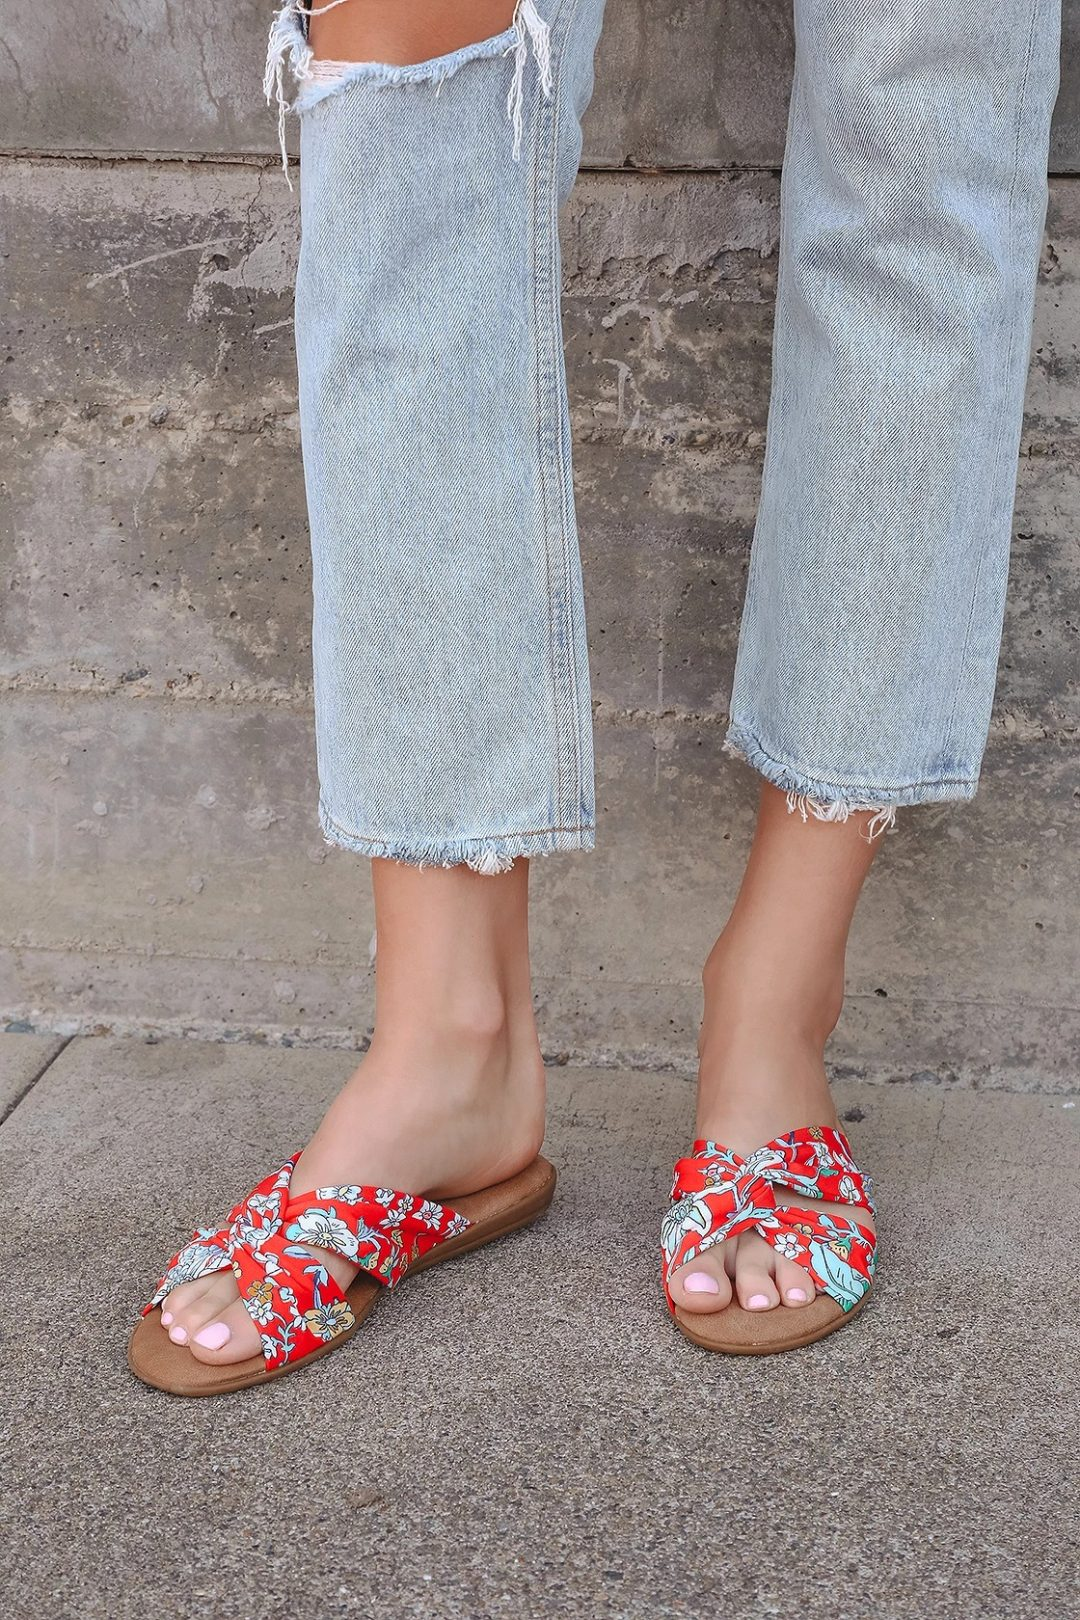 Red floral print sandals